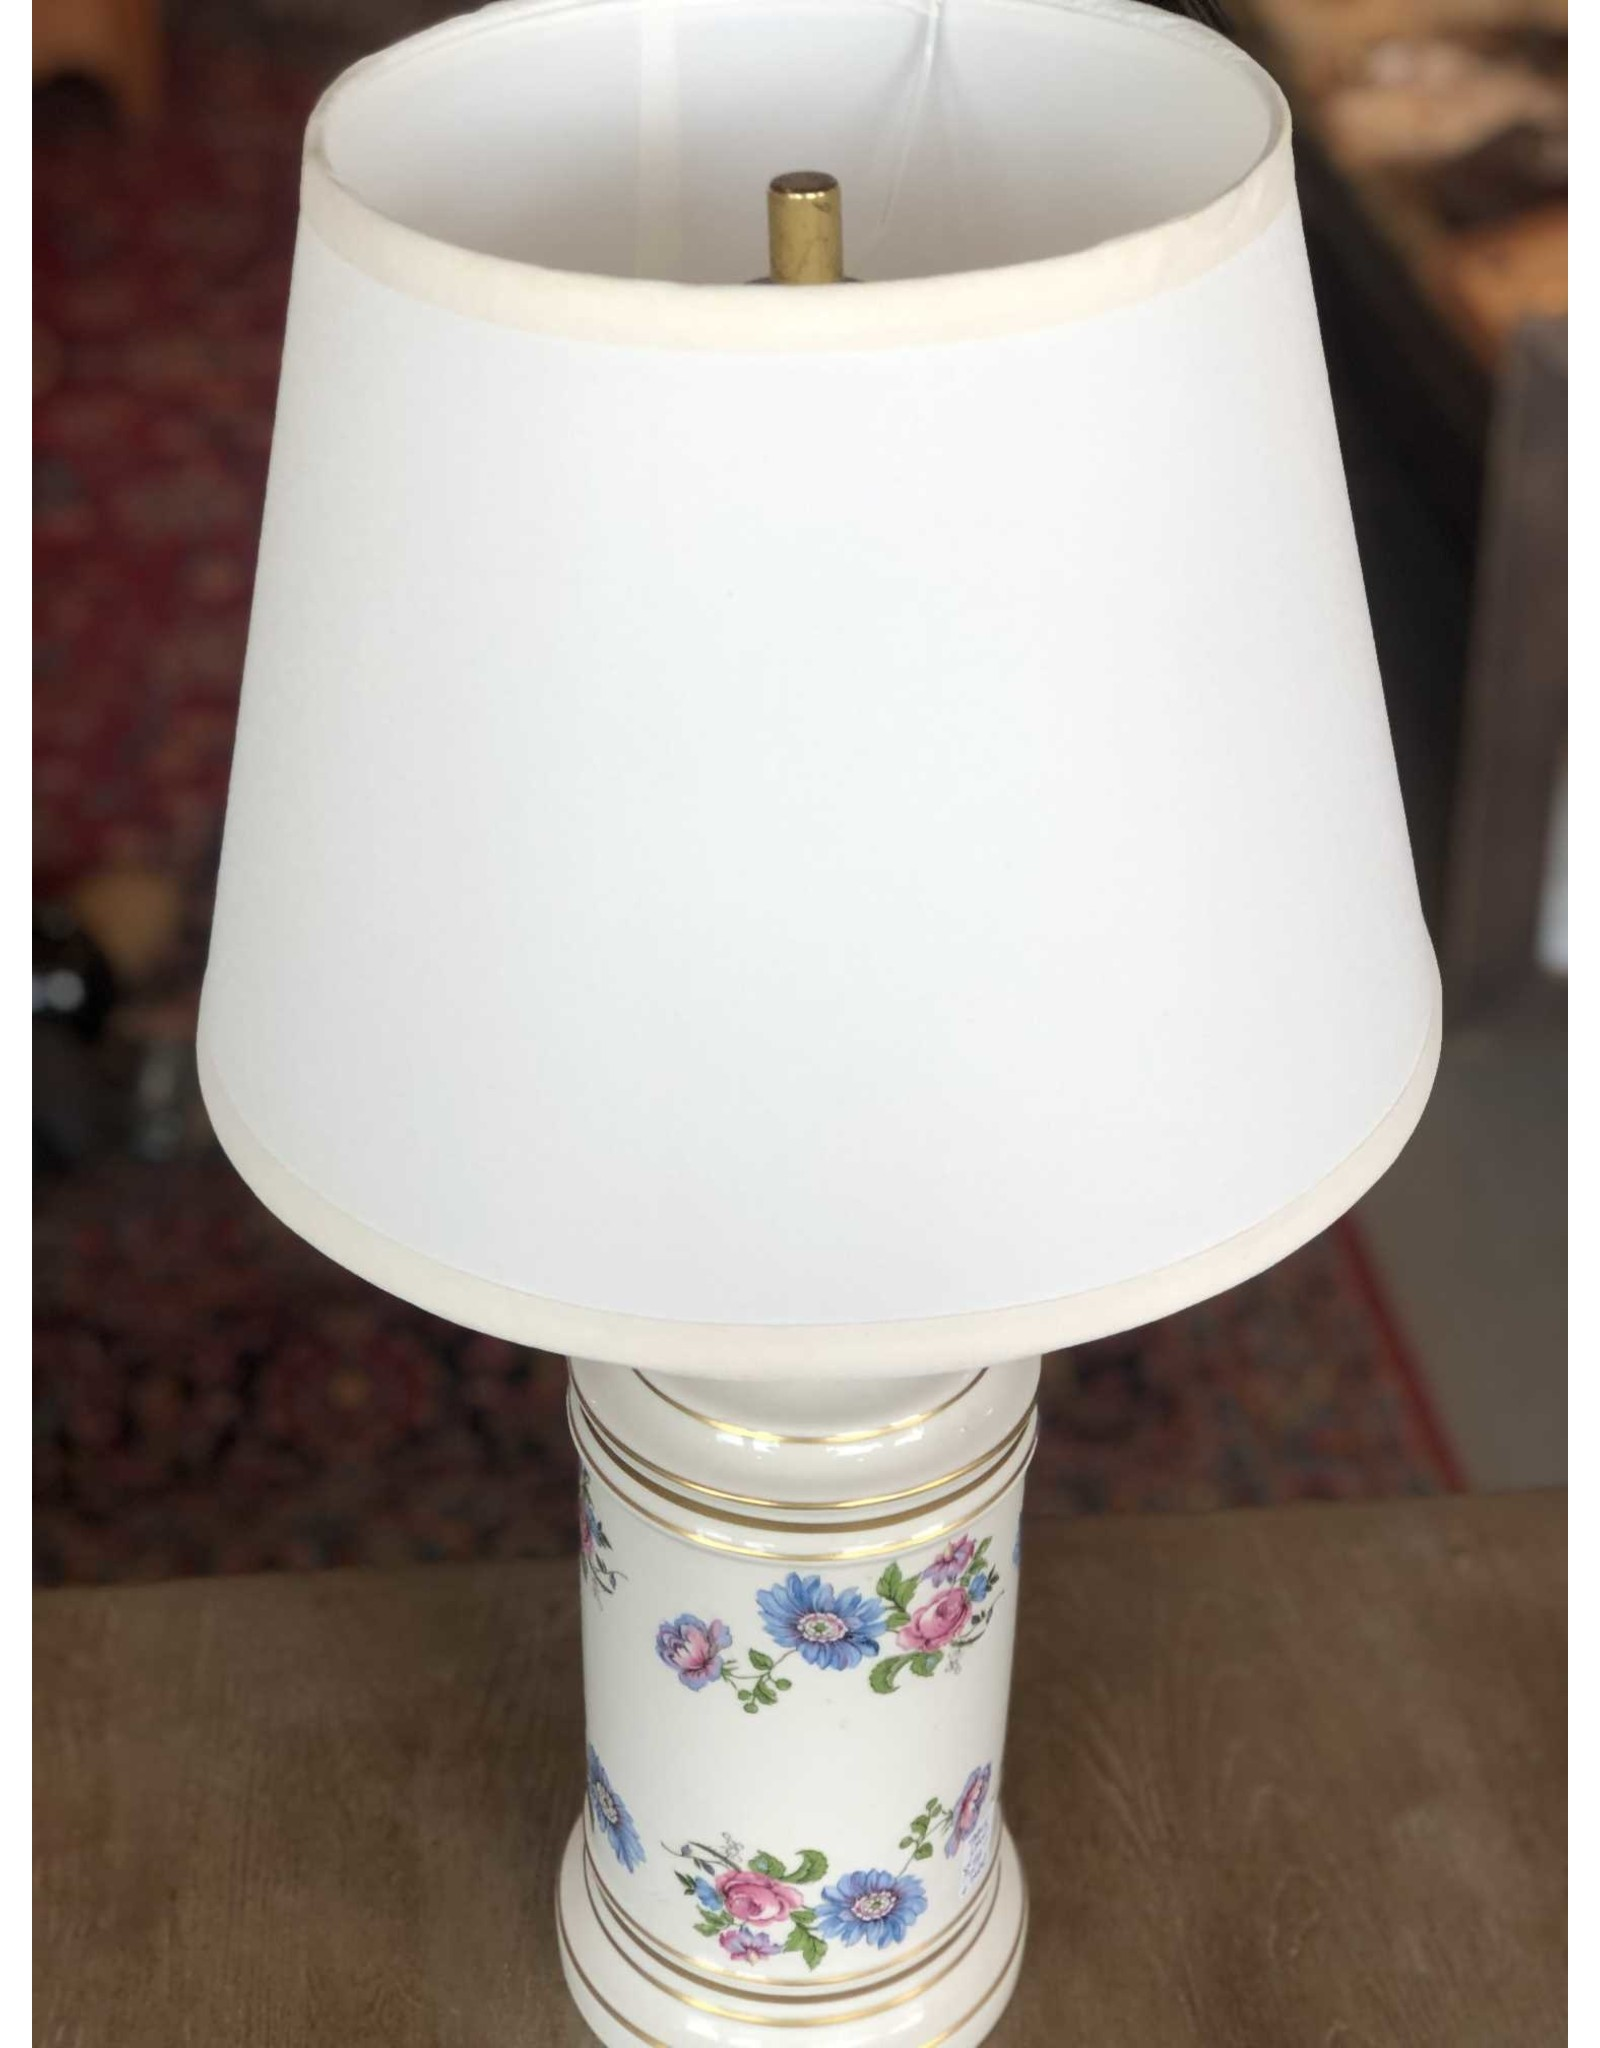 Table lamp - floral porcelain base, white shade